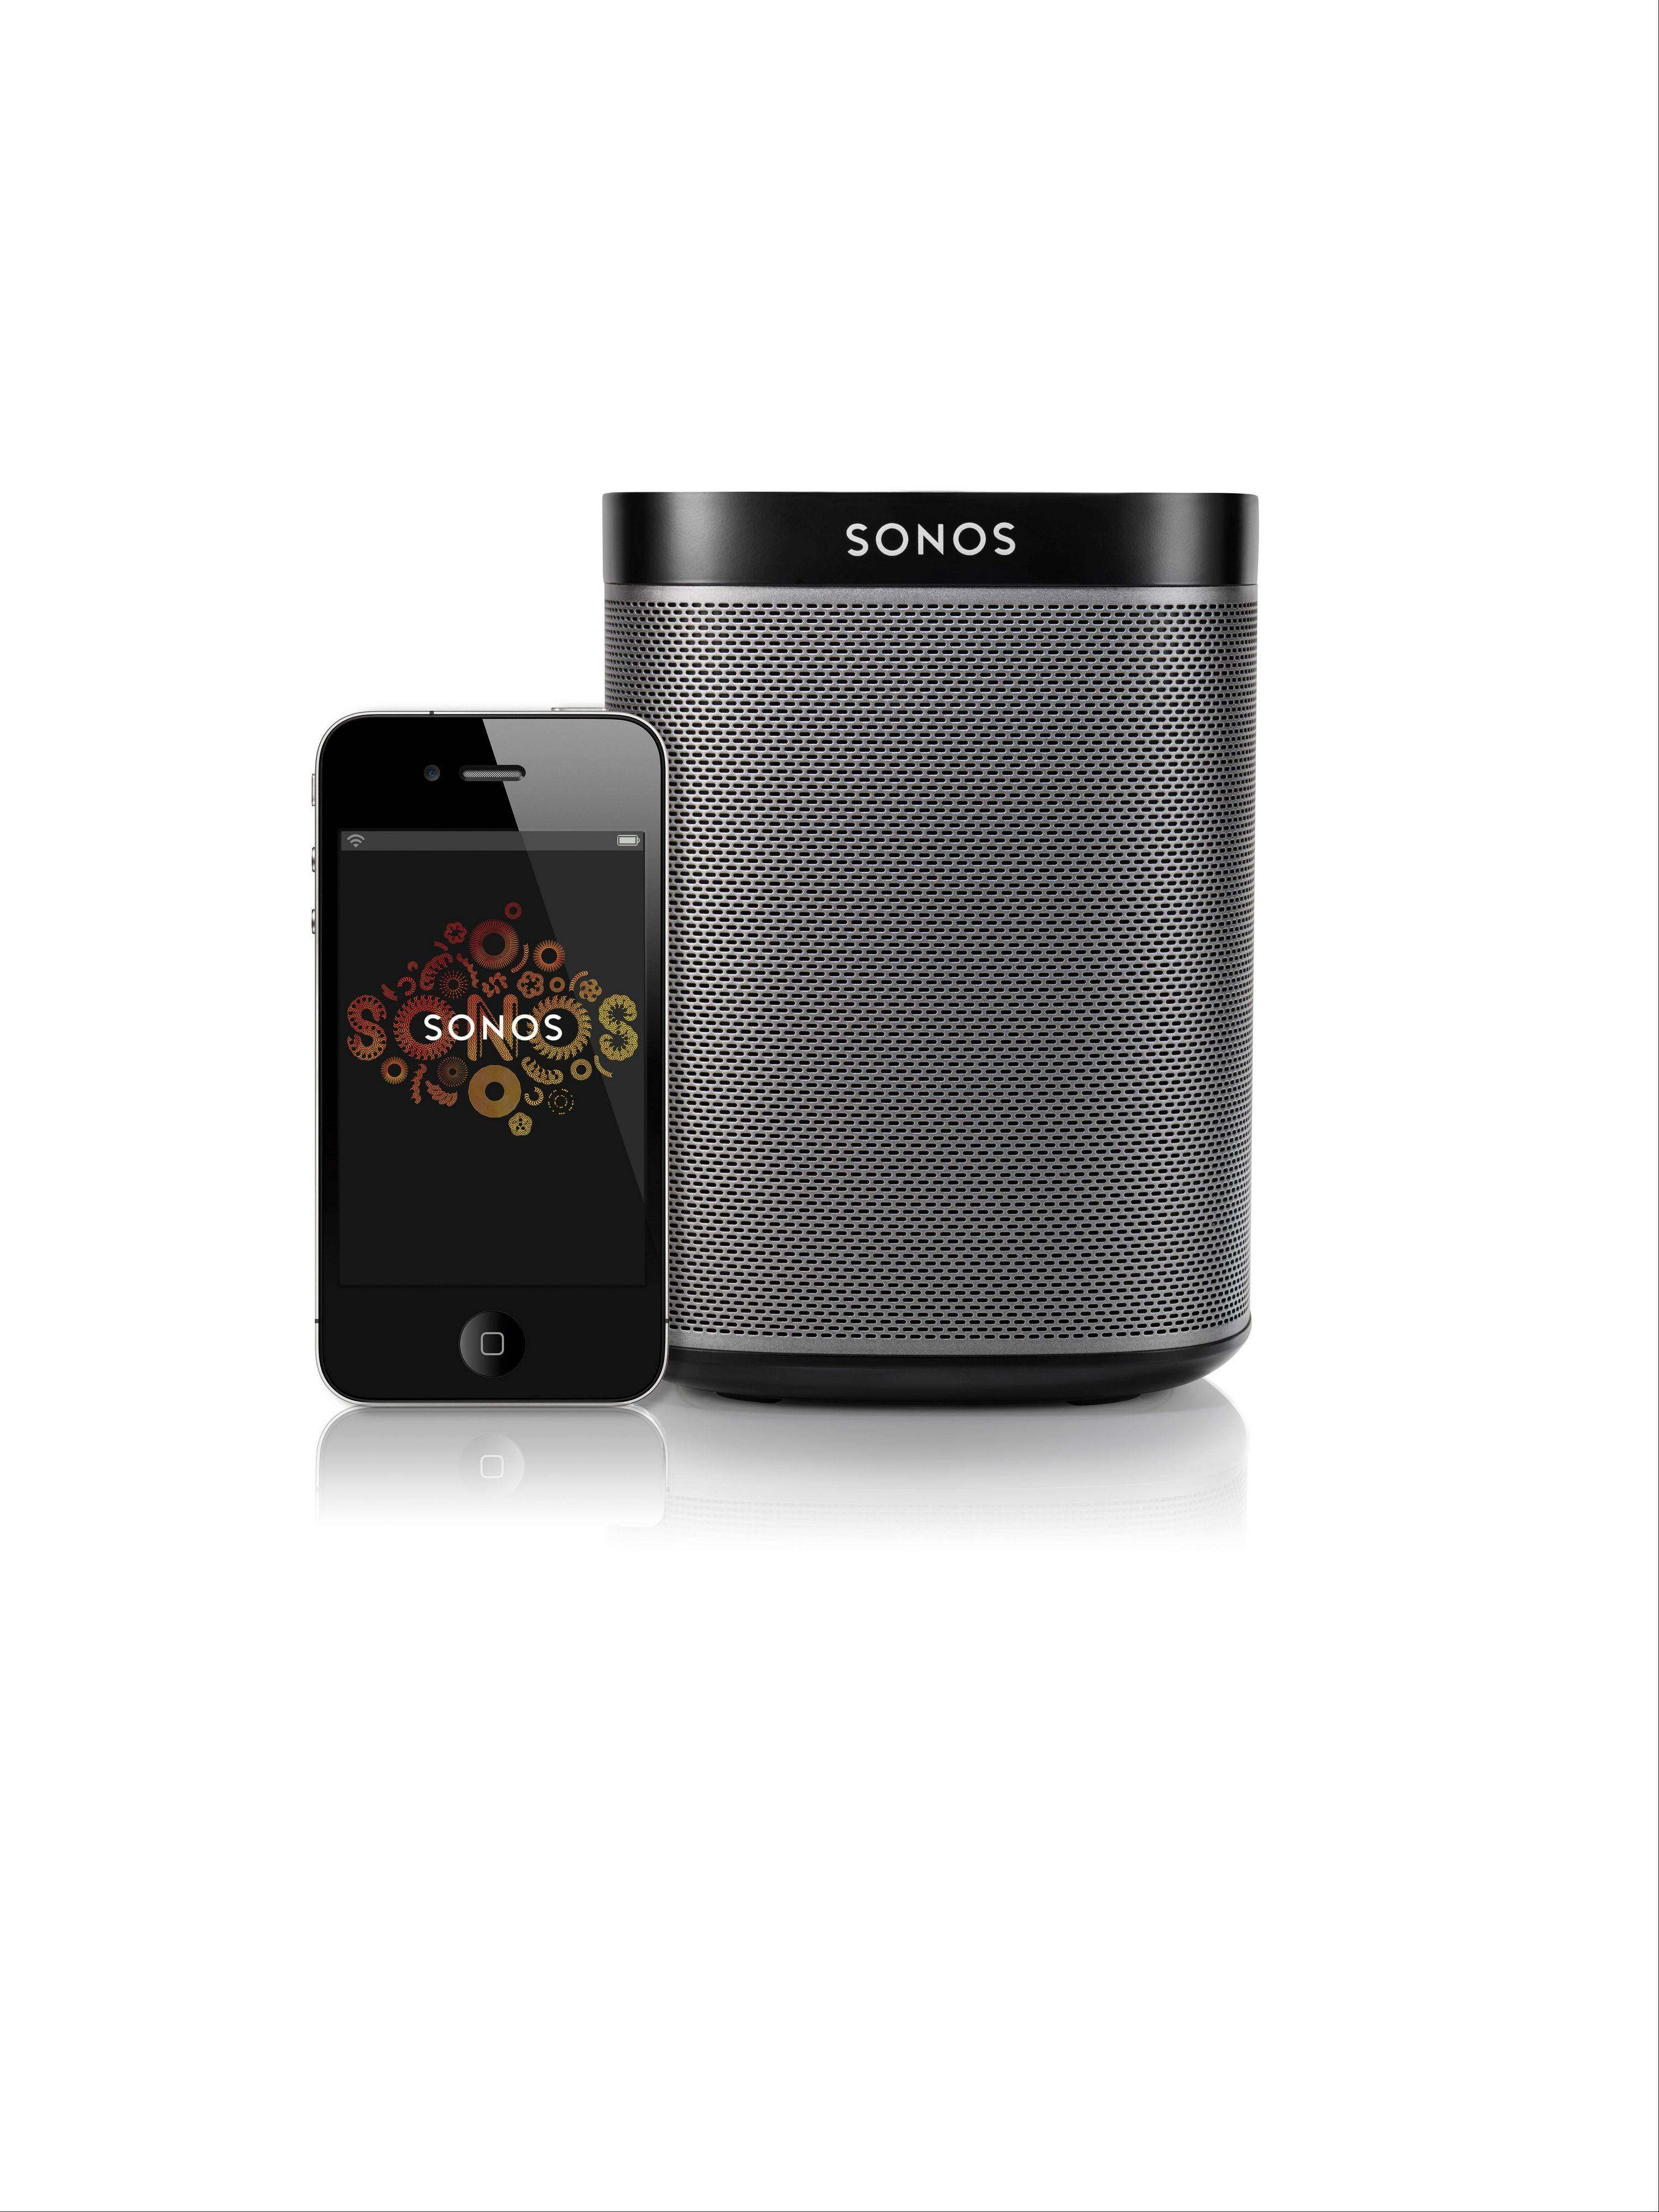 Sonos Black Play 1 speakers run over Wi-Fi and need to be plugged into a power outlet. The speakers are designed to disperse sound in a wide radius and fill a room with sound.